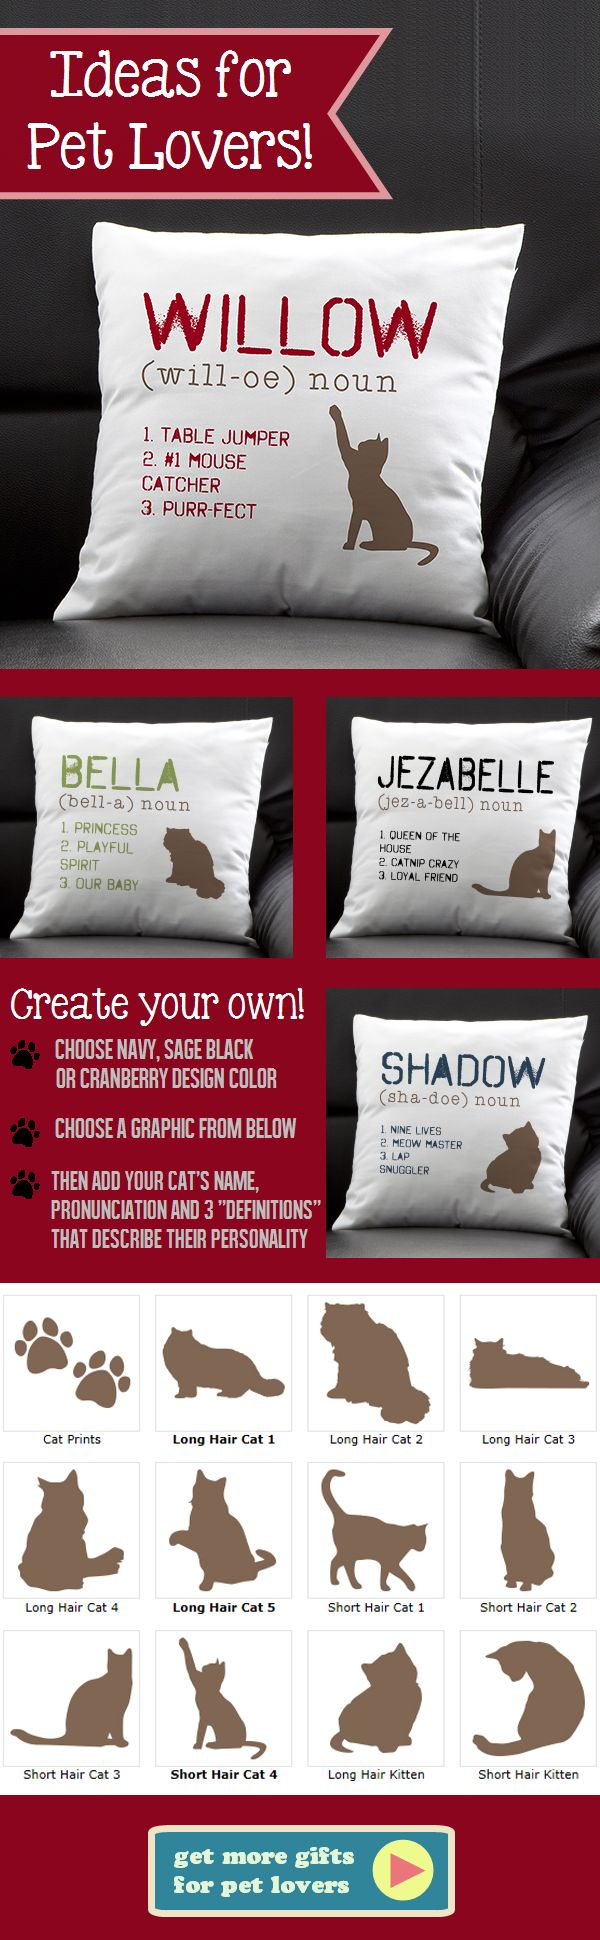 Personalized pet pillows!